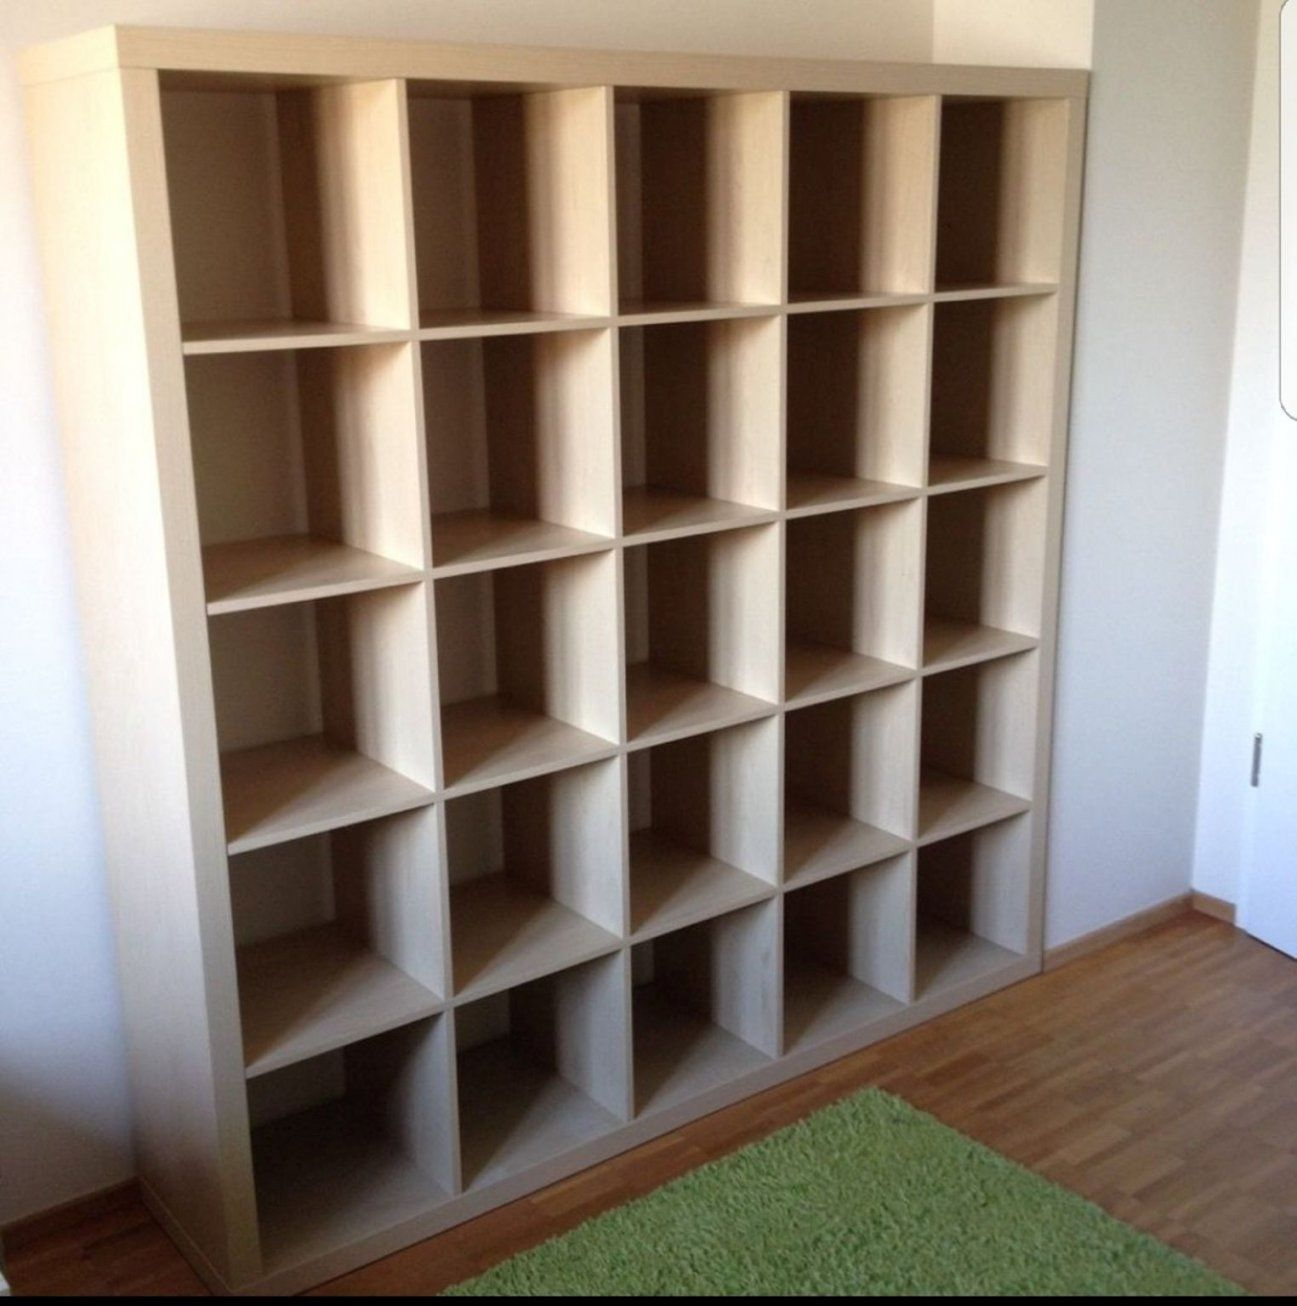 Expedit Regal Excellent Modell Um Expedit Regal Expedit Birke von Ikea Regal Kallax Gebraucht Photo